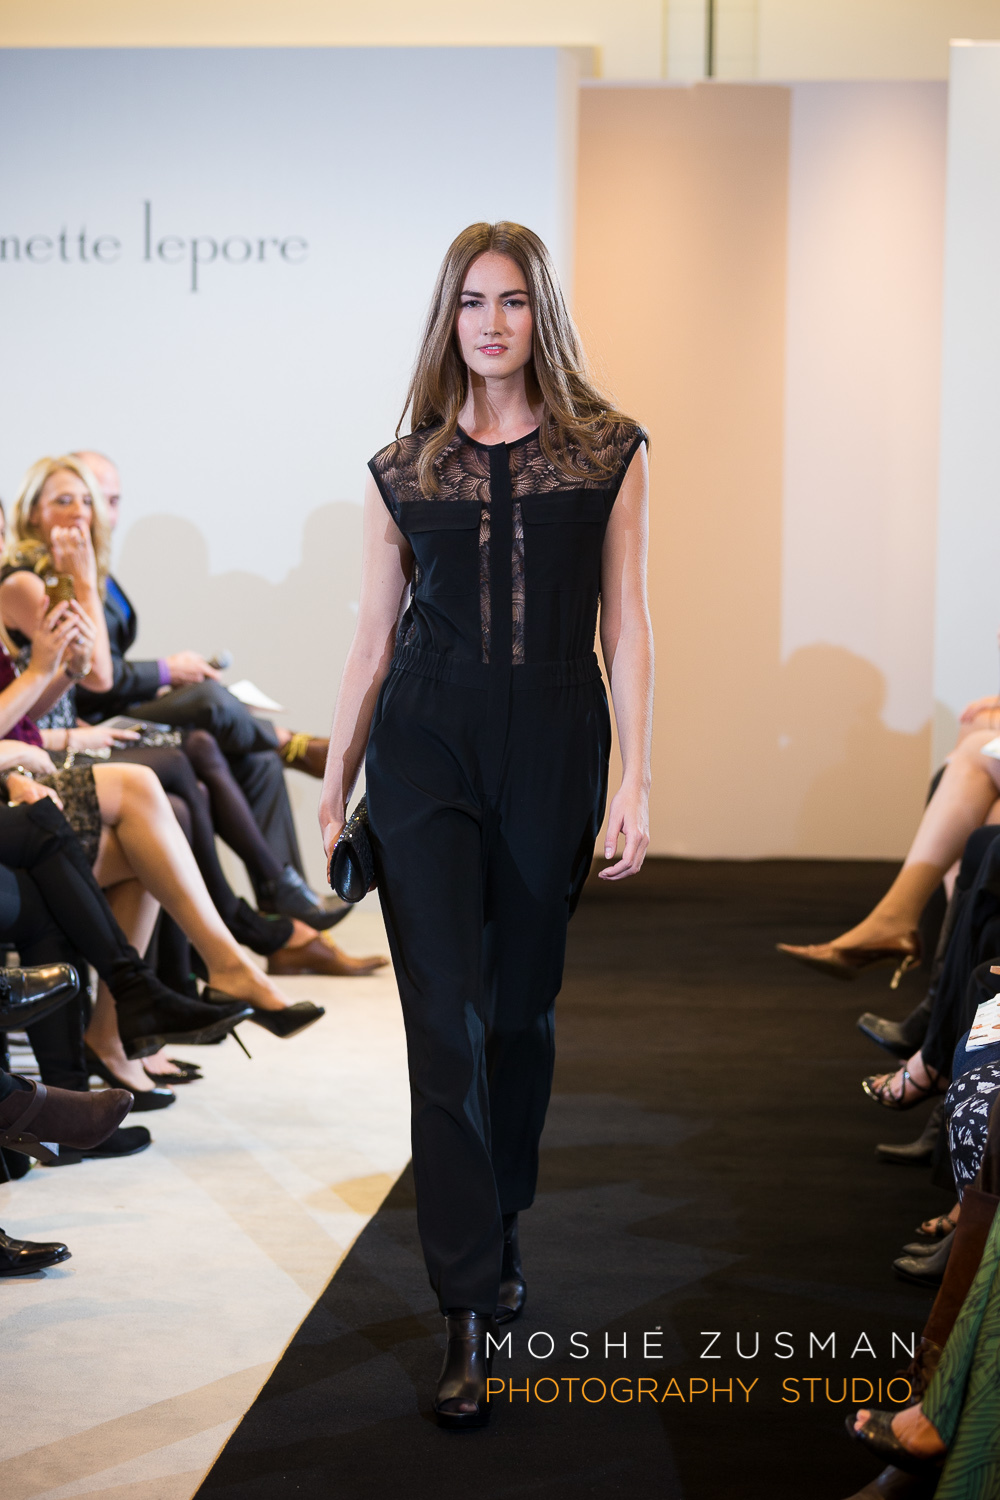 Nanette-Lepore-Saks-Fifth-Avenue-Fashion-Show-Moshe-Zusman-Photography-08.jpg